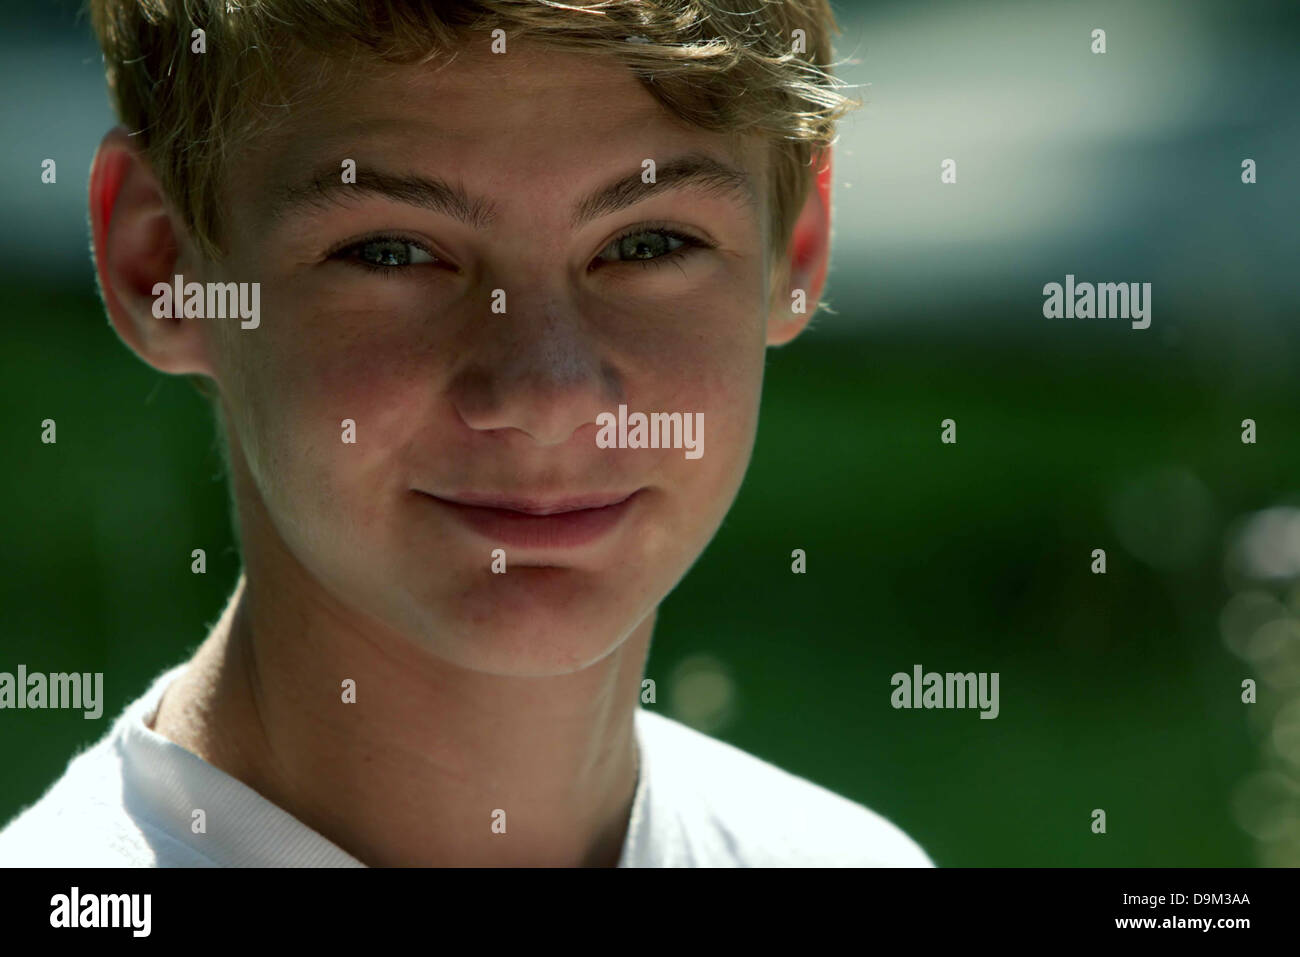 Blond Blonde Hair Boy Youth Young Child Kid Smile Smiling Head And